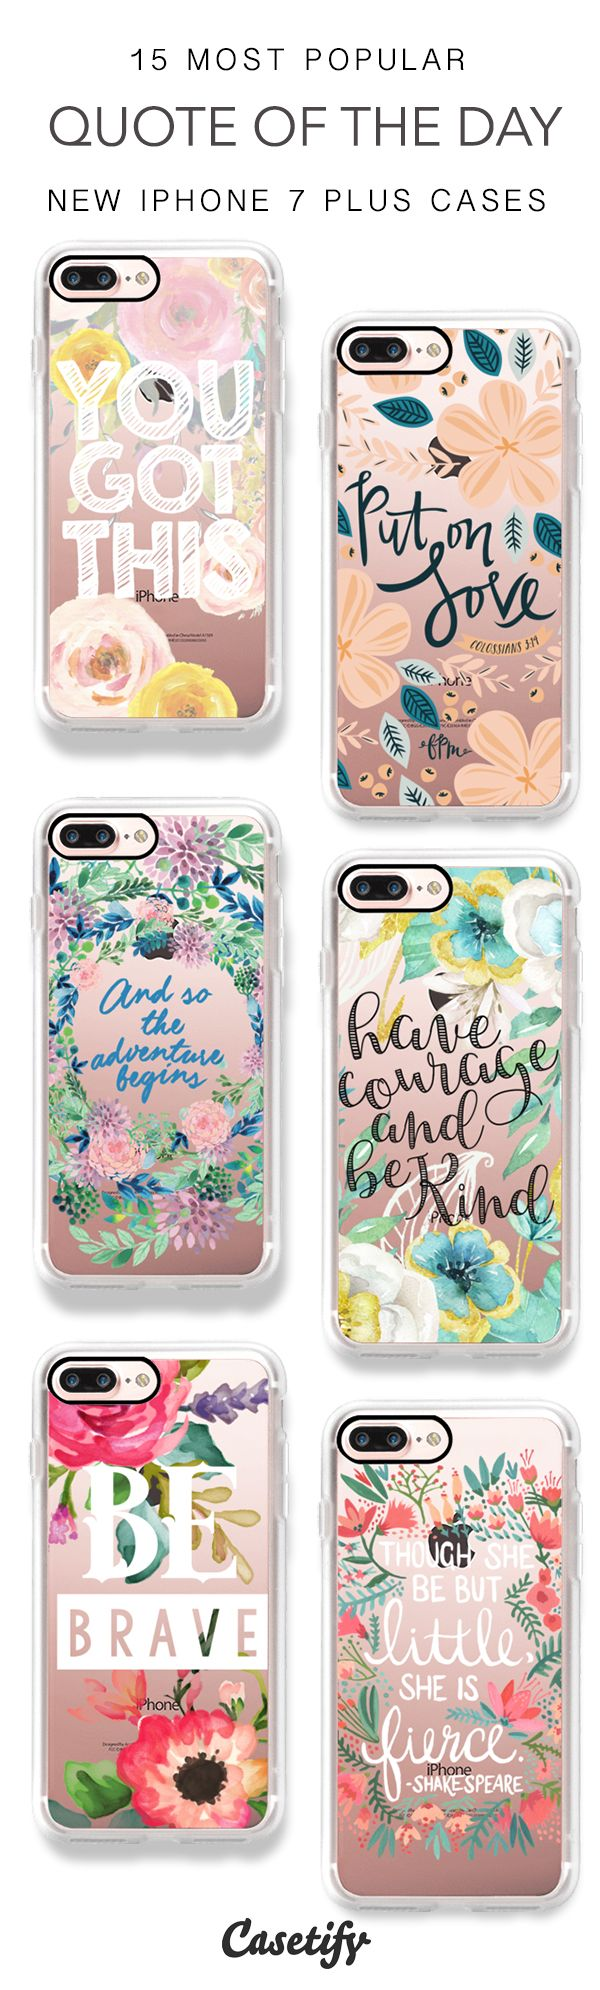 Get inspired by the quotes of the day. 15 Most Popular Quotes & Floral iPhone 7 Cases and iPhone 7 Plus Cases here > https://www.casetify.com/artworks/qKltg5Dh1O http://amzn.to/2s1QEt1